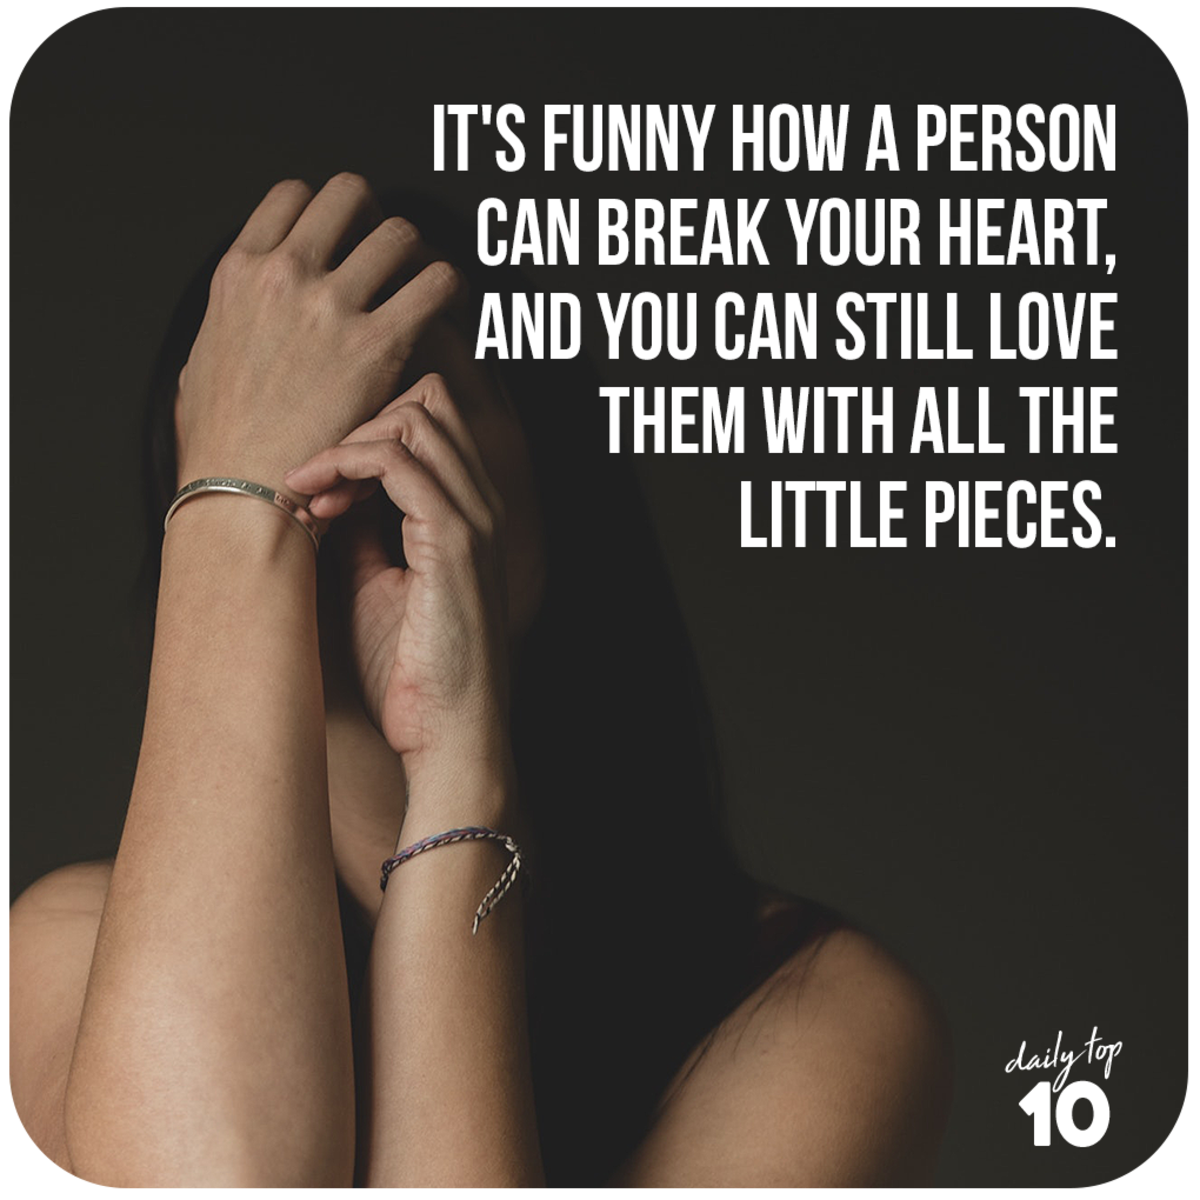 A person can break your heart.